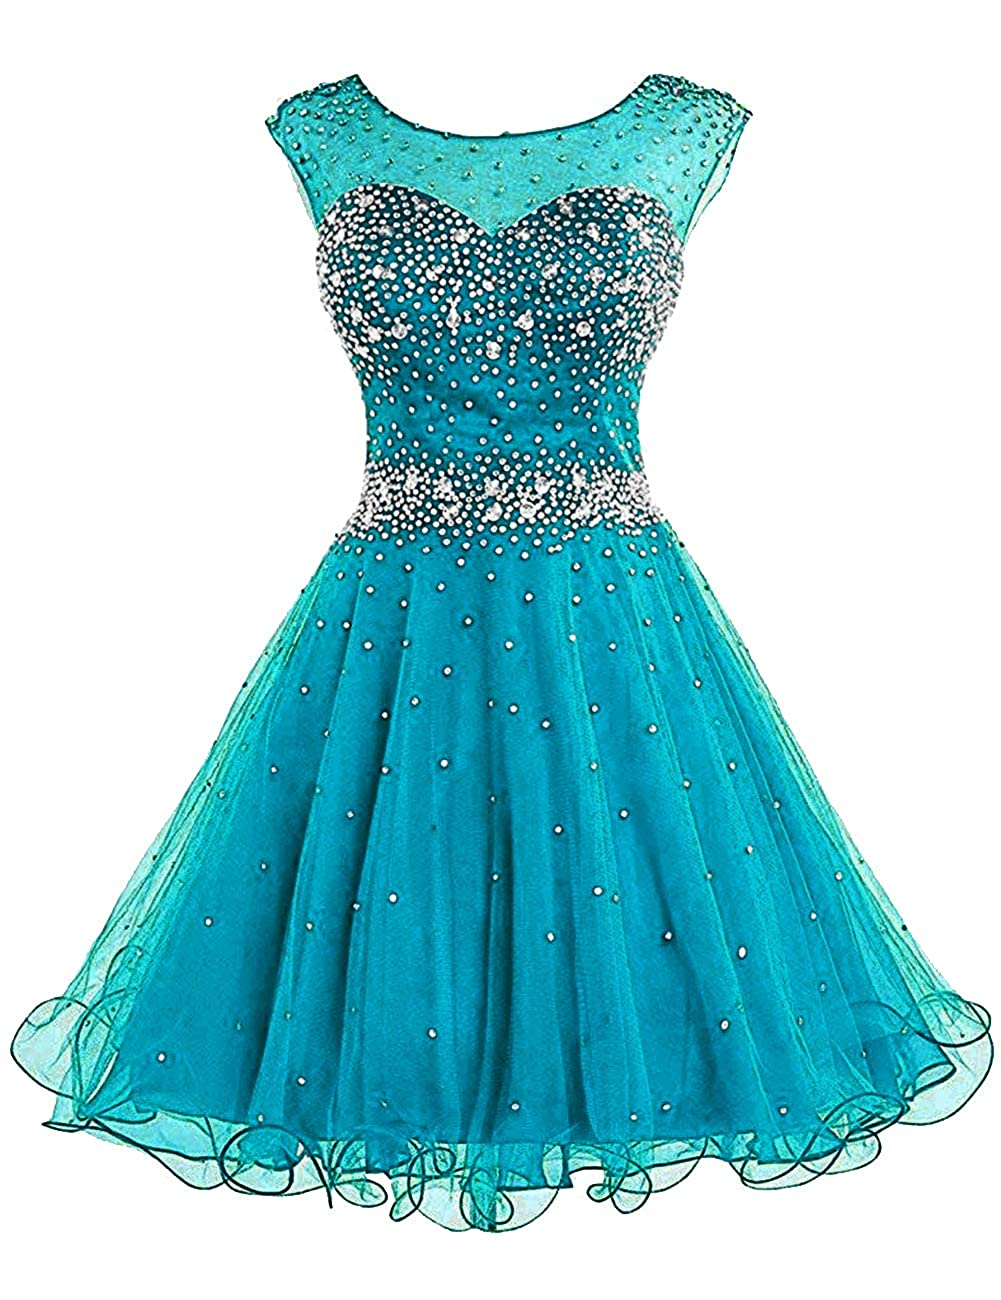 Teal bluee H.S.D Homecoming Dresses Prom Party Dresses Short Cocktail Dress Beads Graduation Gown